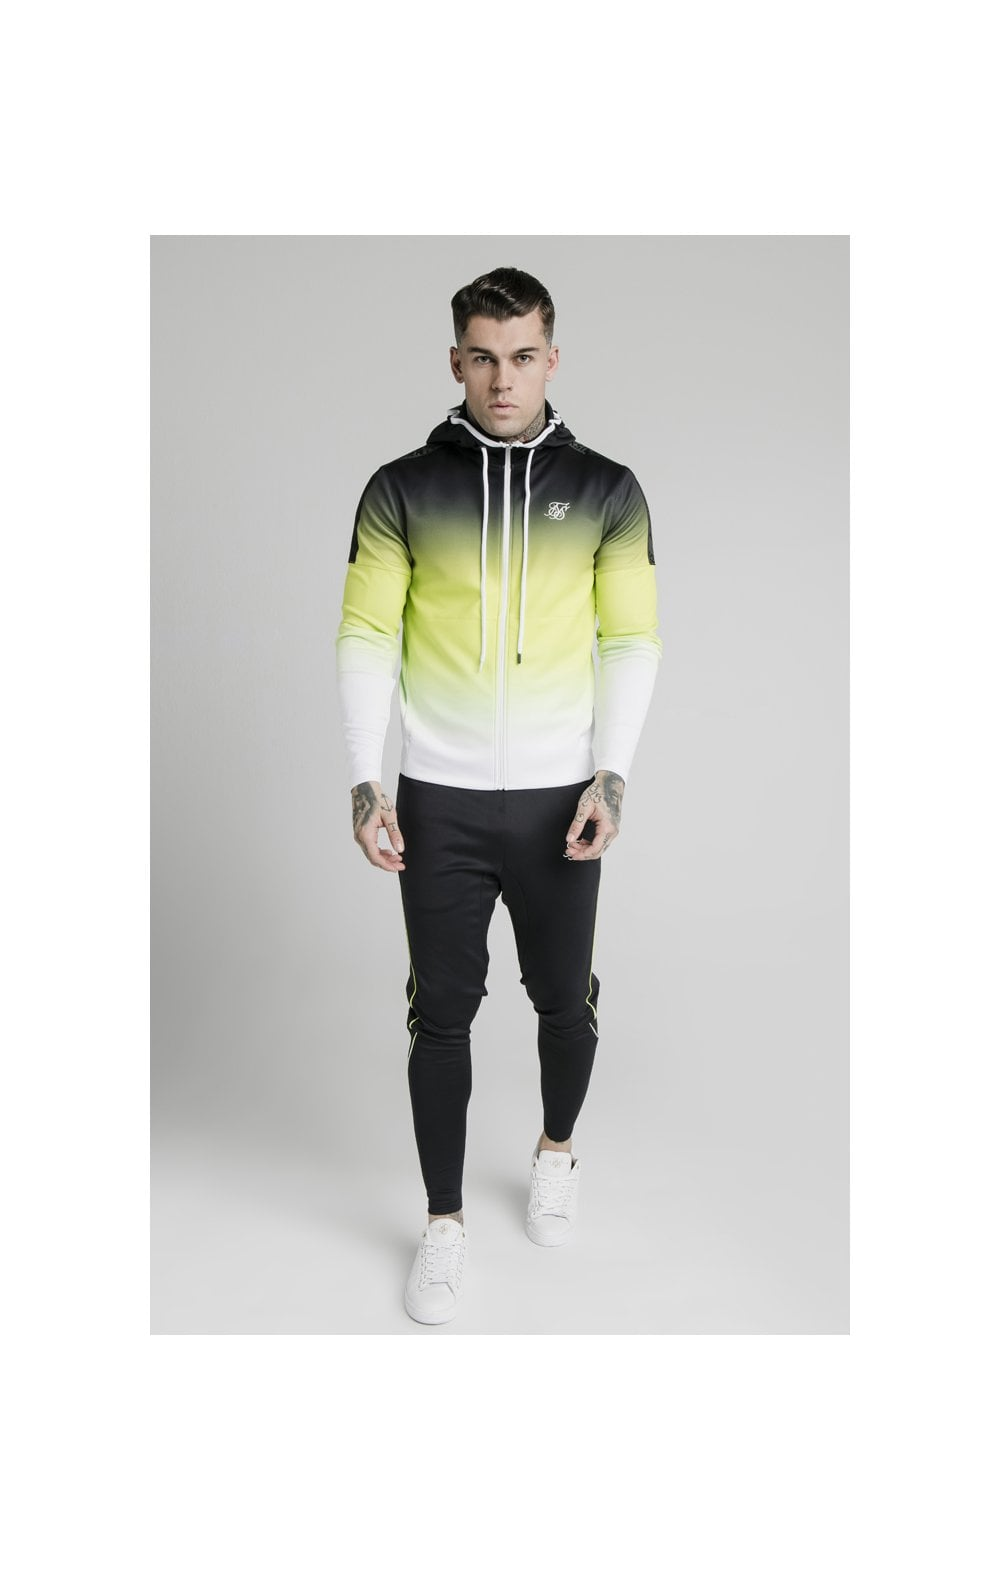 SikSilk Tri-Fade Agility Zip Through Hoodie - Black, Fluro & White (3)